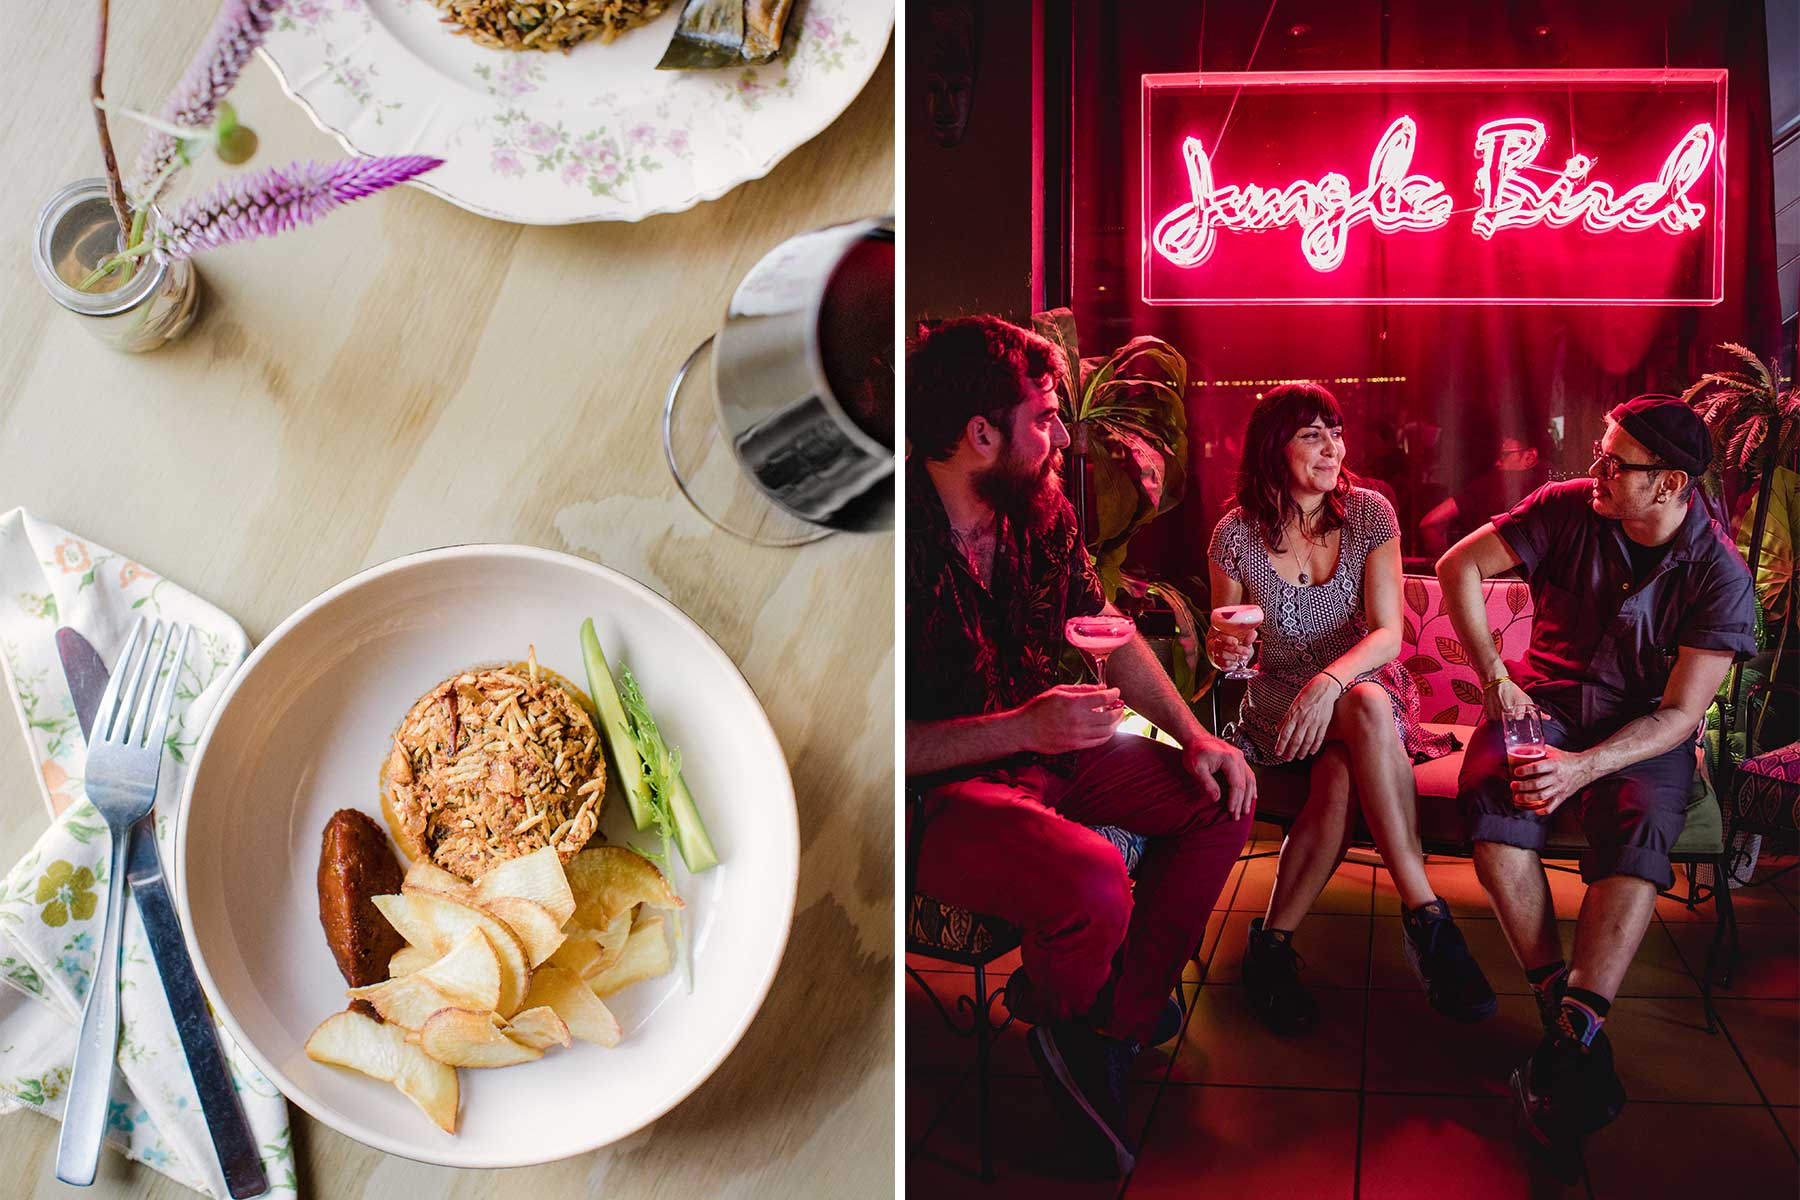 Two photos from Puerto Rico. One shows a dish of young herring, and the other shows friends at the neon-lit Jungle Bird cocktail bar